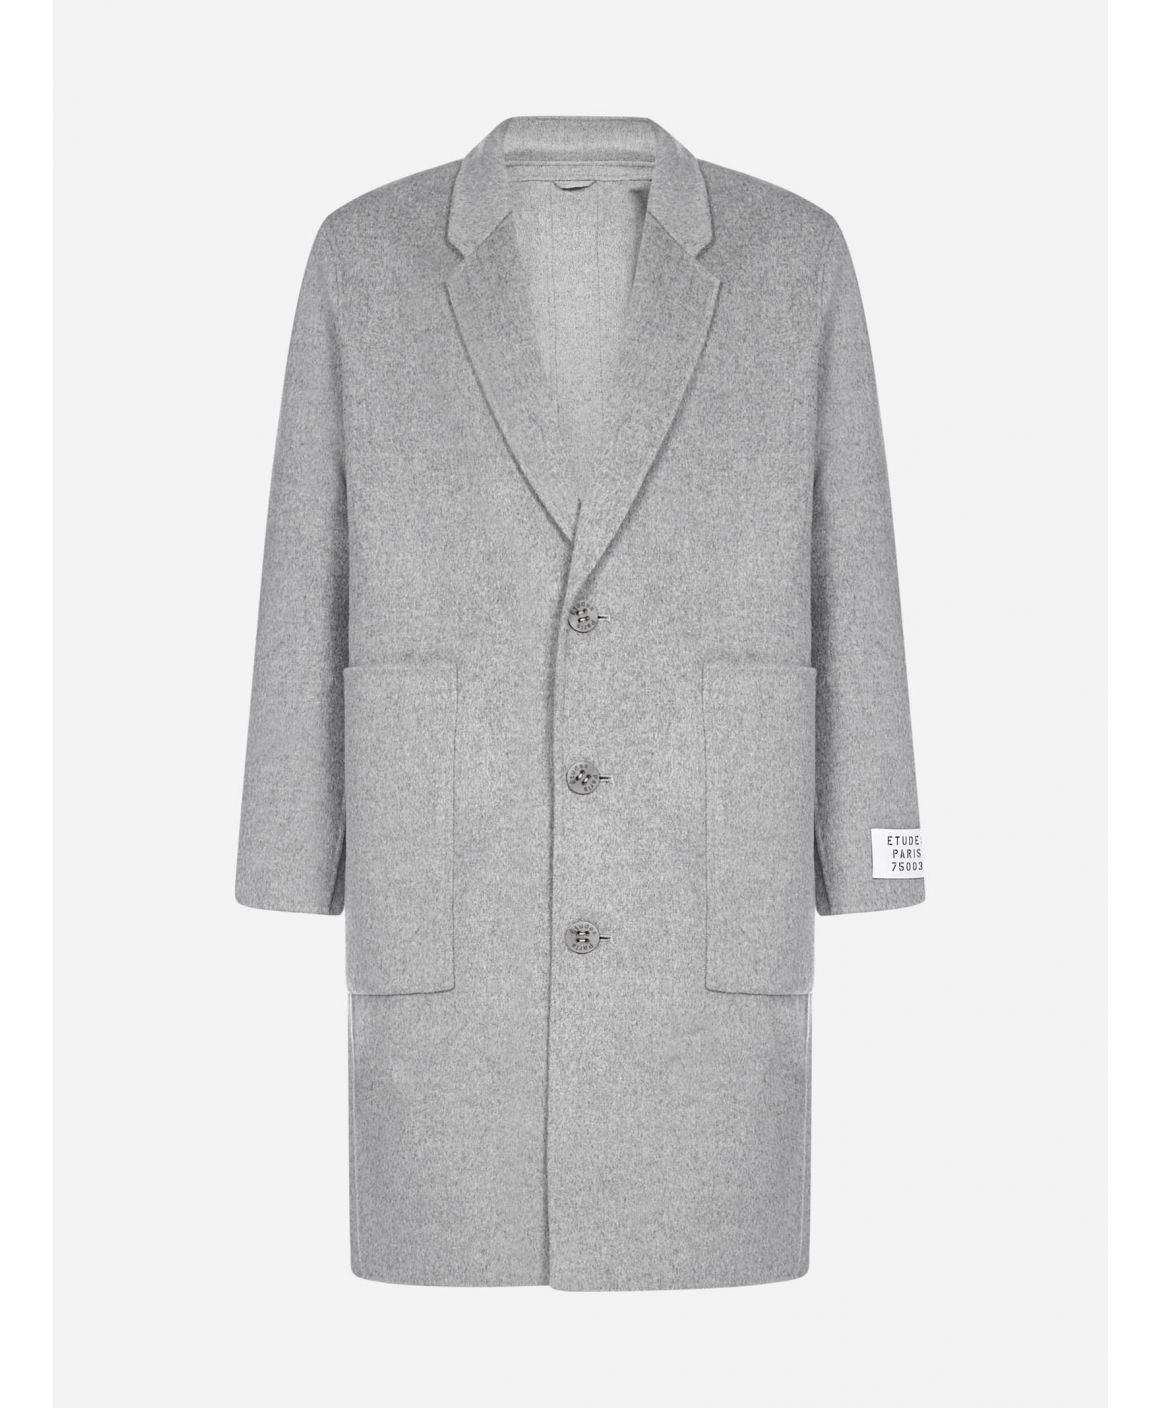 Archeolgy wool and cashmere coat